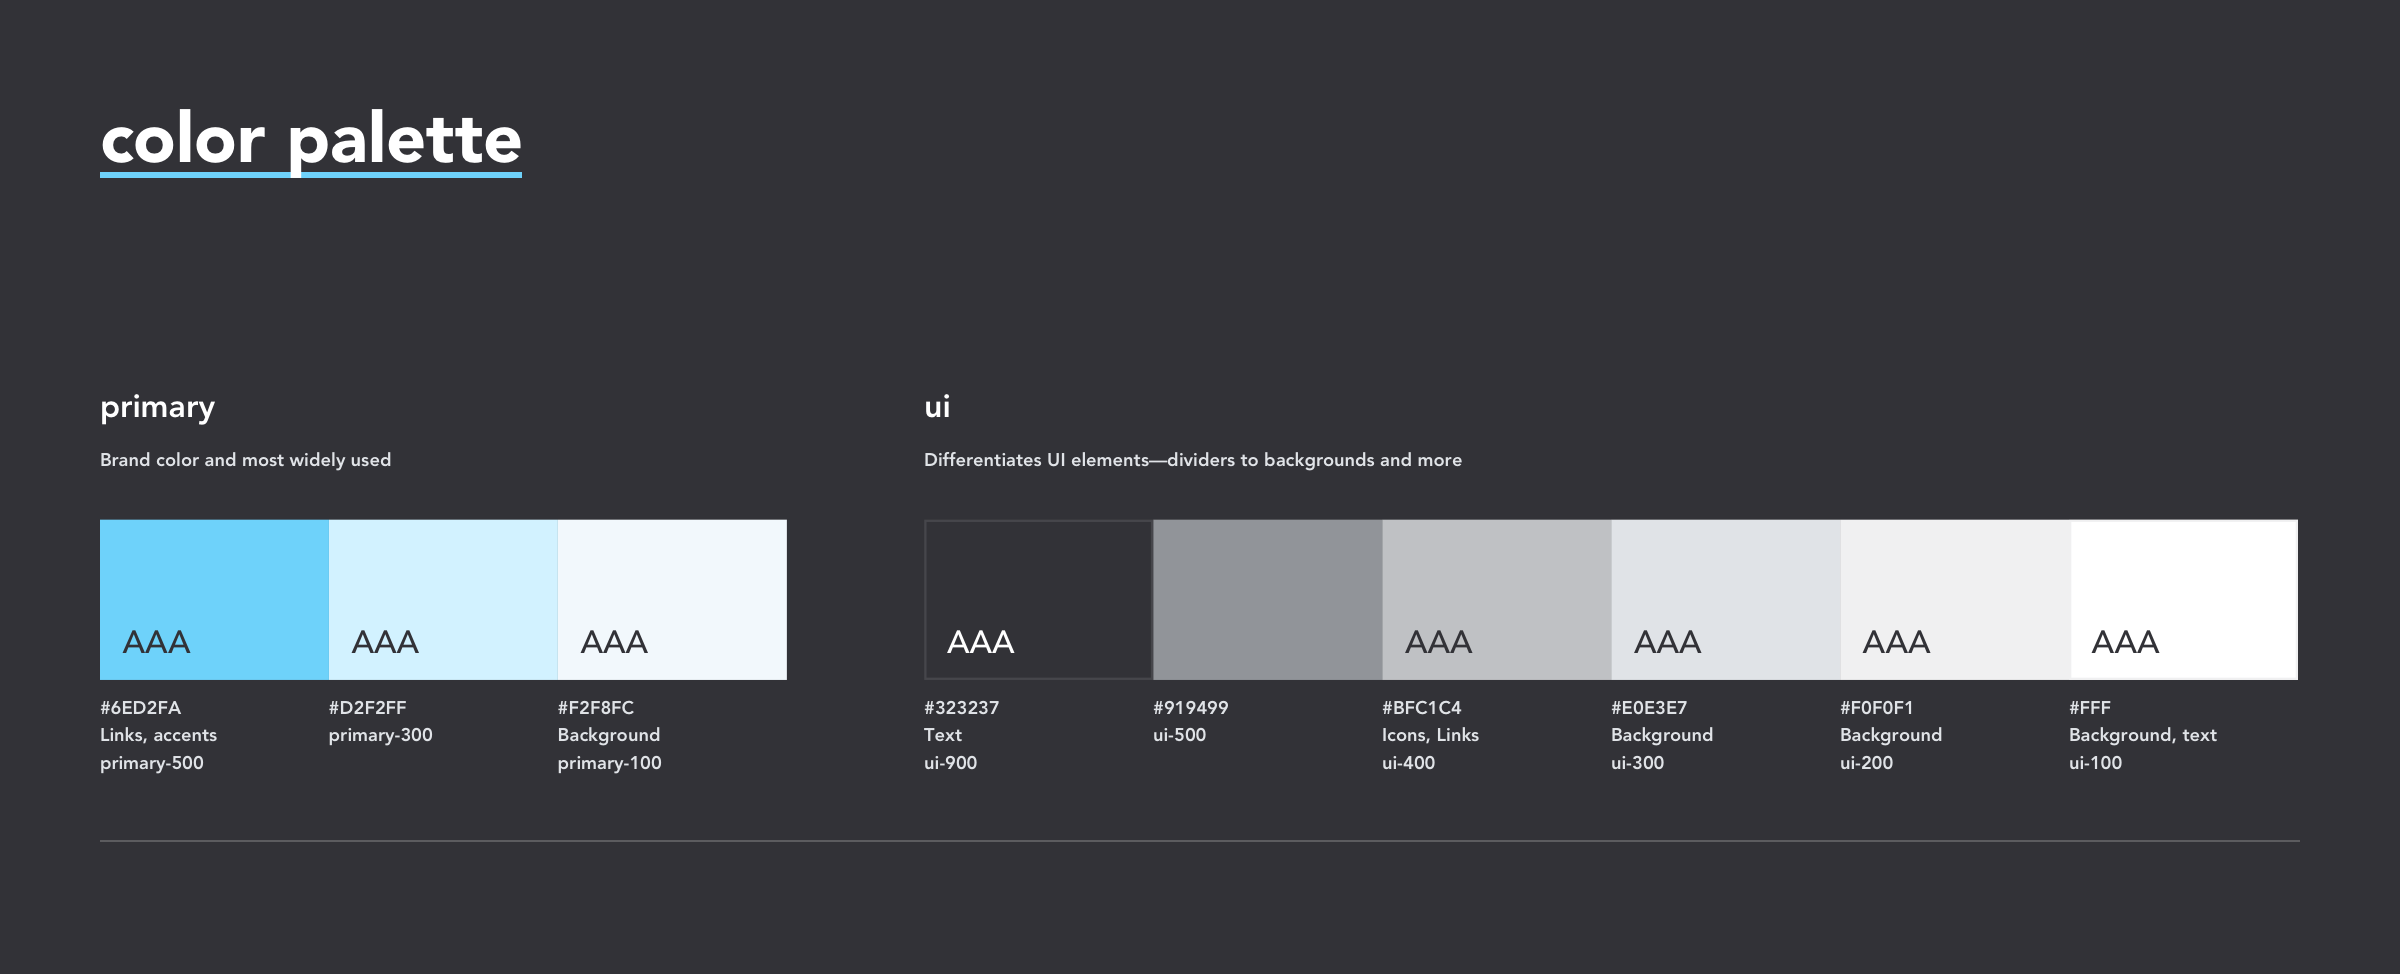 Our Ethos color palette, highlight primary and ui categories with their new naming conventions